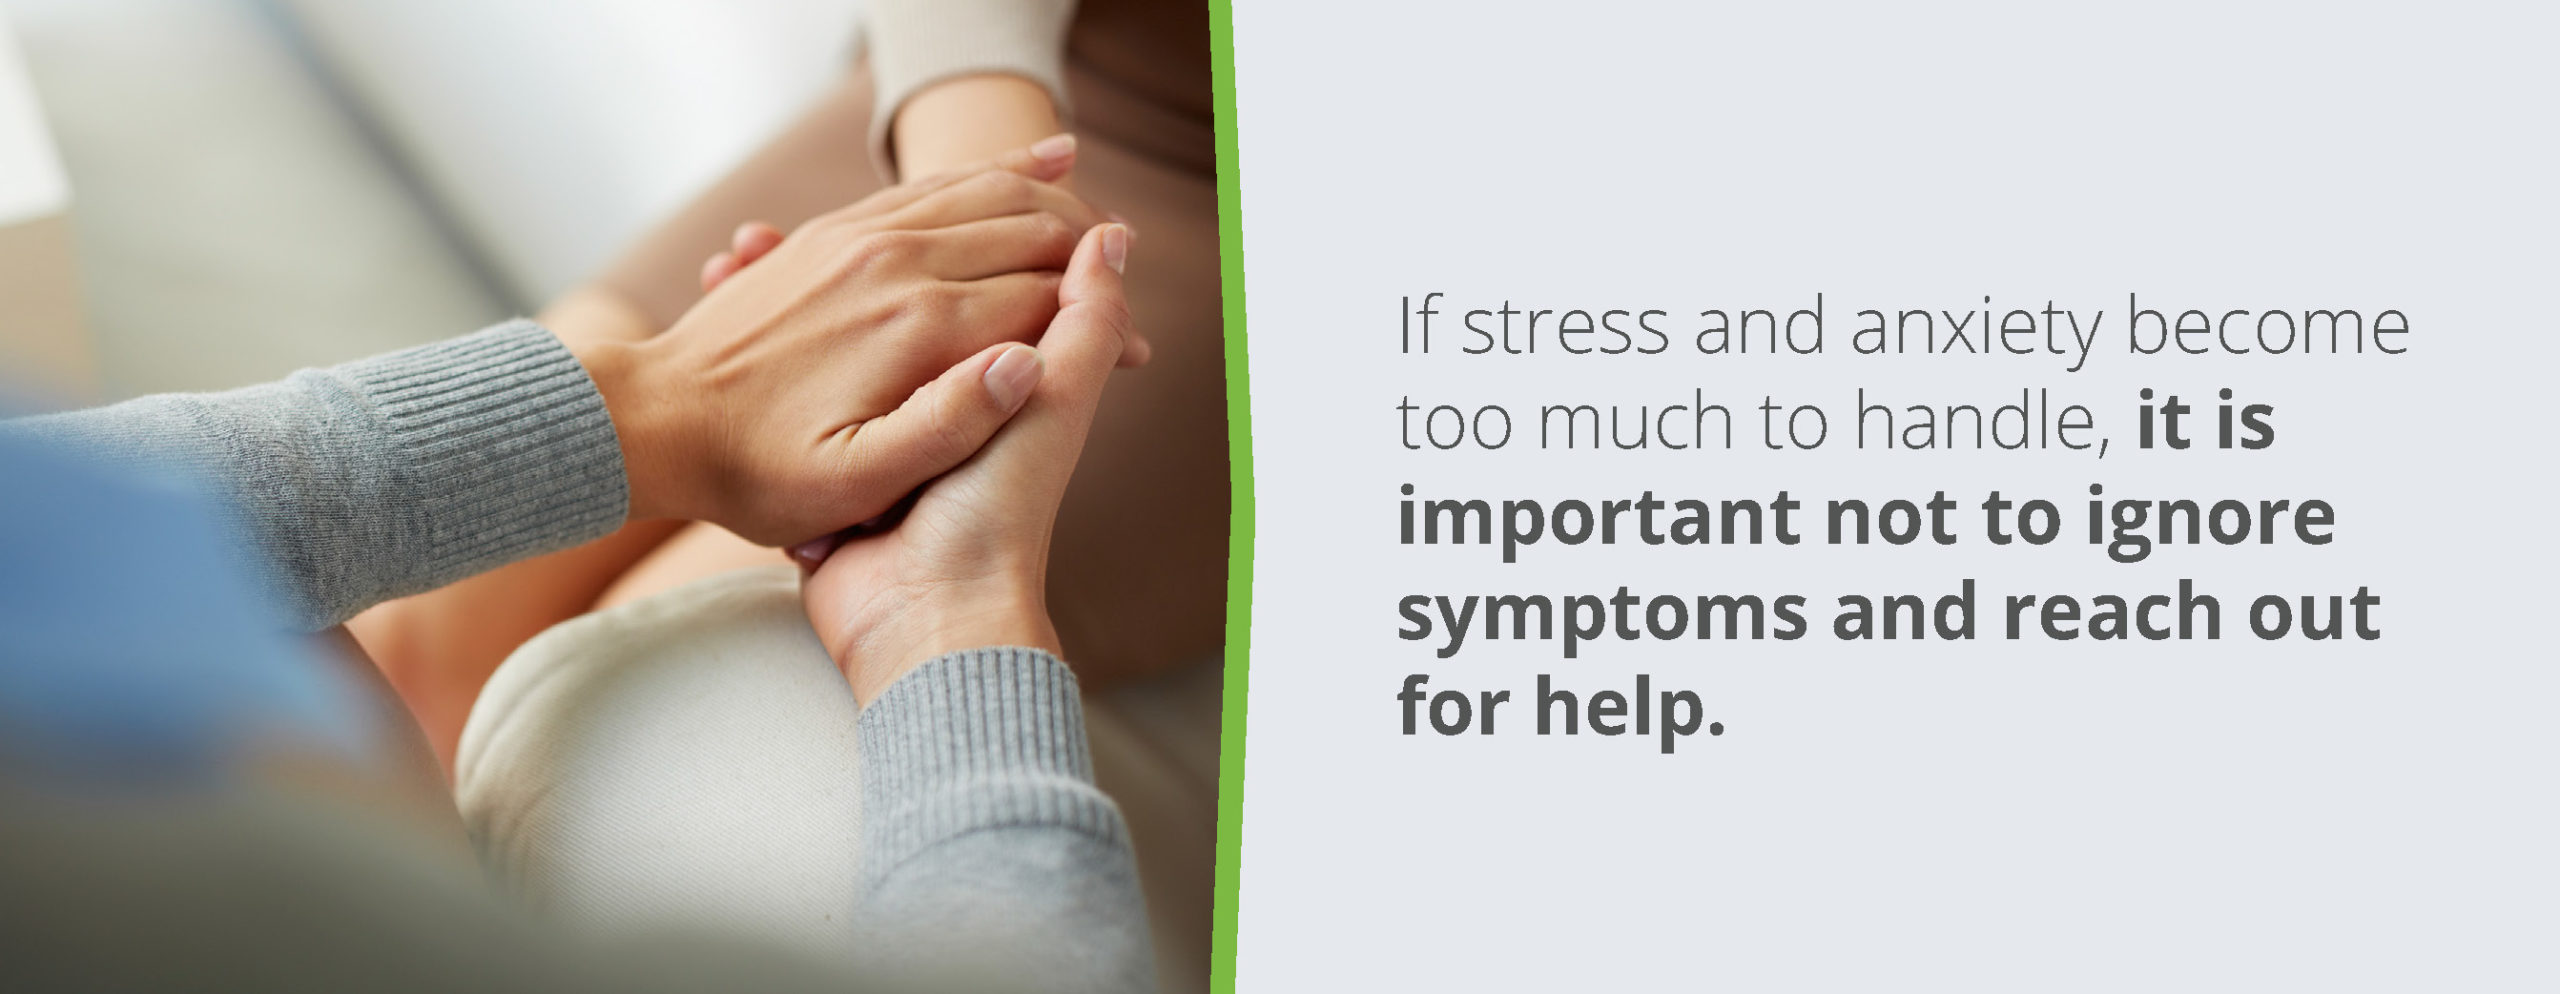 Reach out for help with stress and anxiety